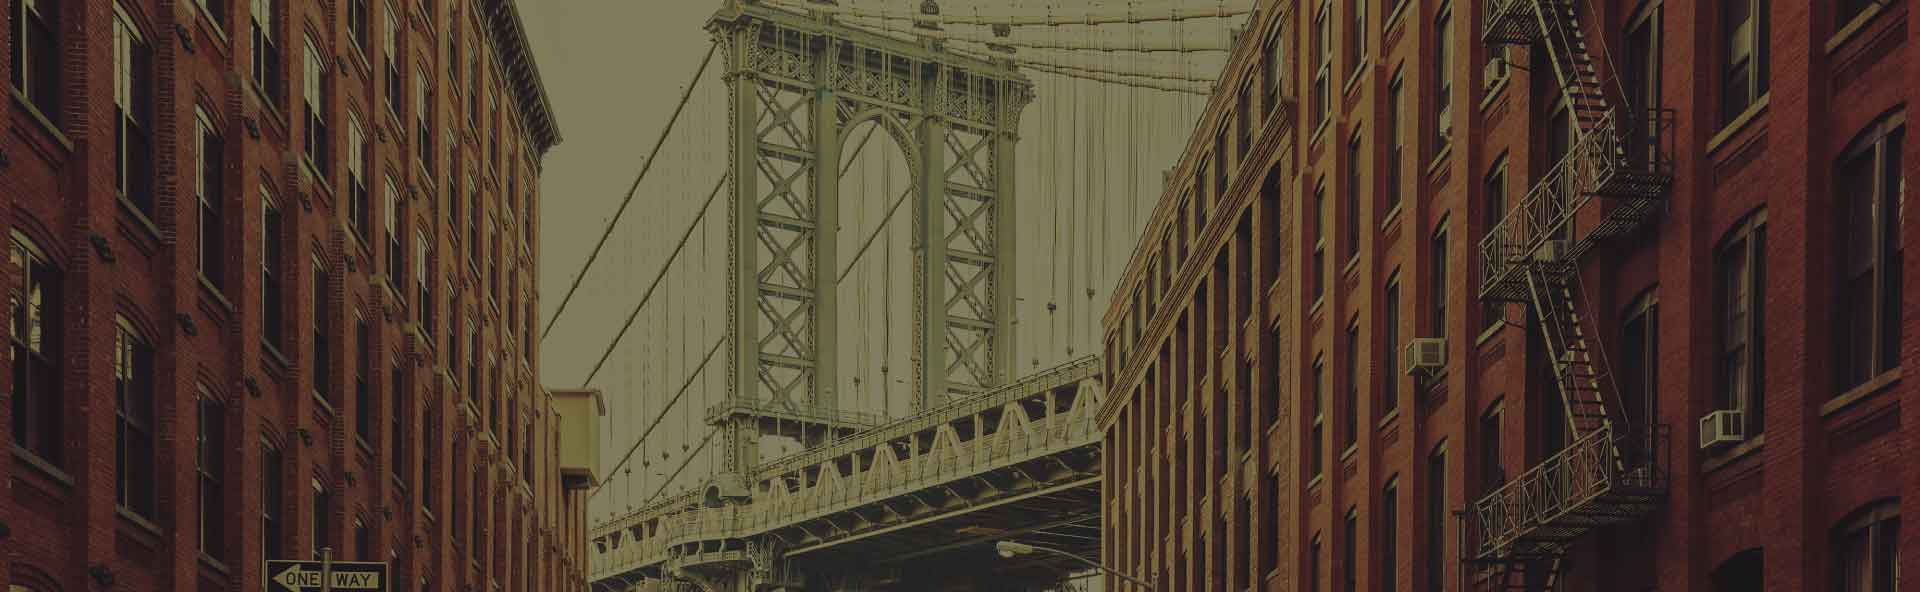 NAHREP Upper Manhattan can help YOU build your business